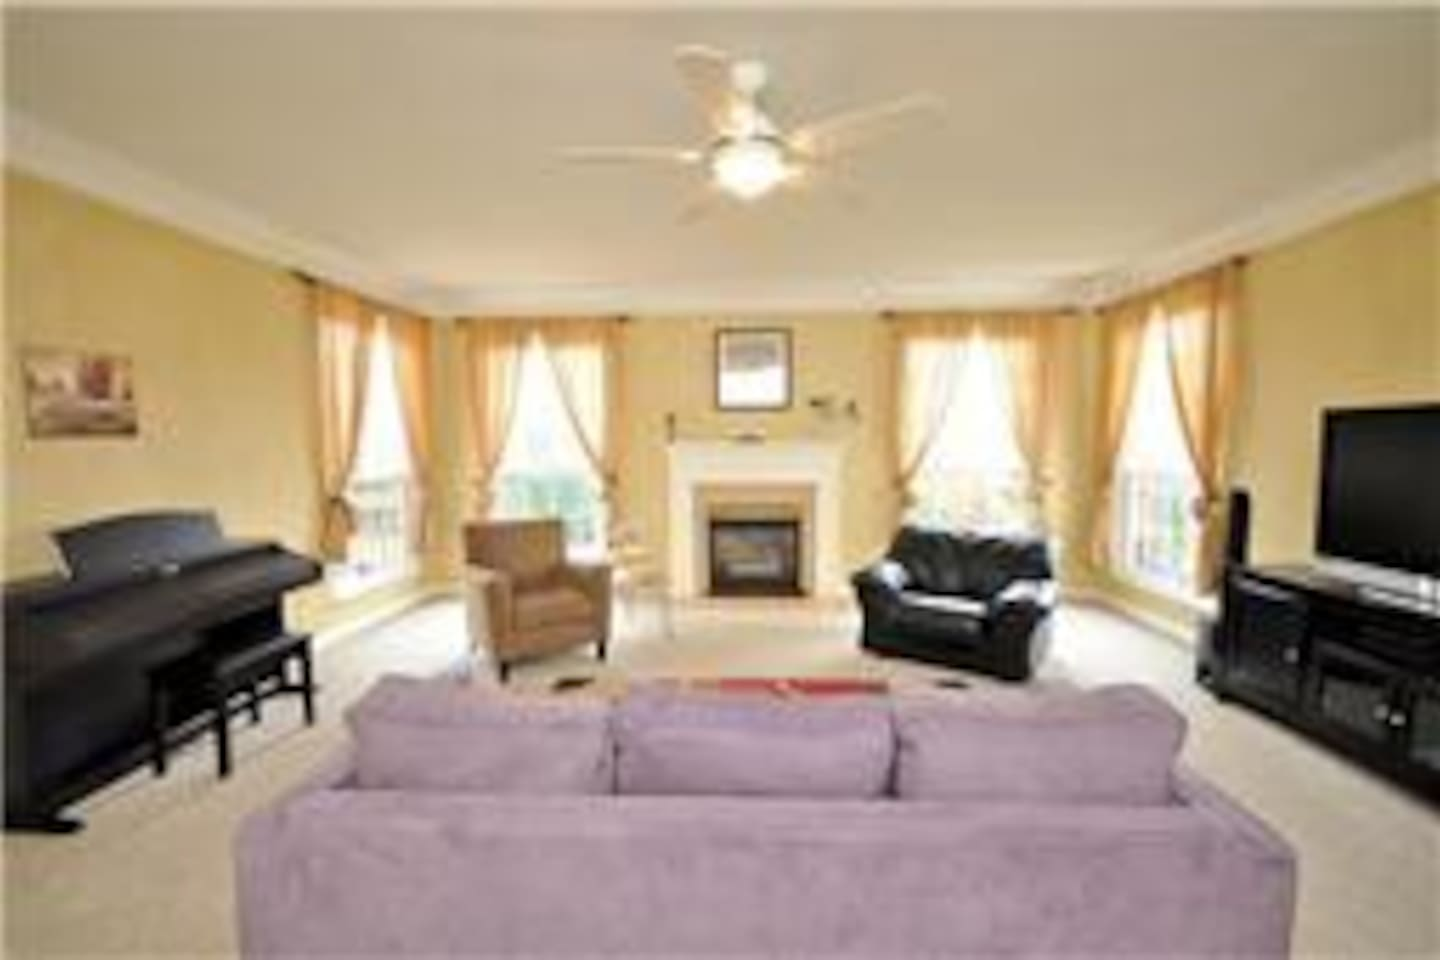 Feel at home in large living area with smart tv, dvd, and piano